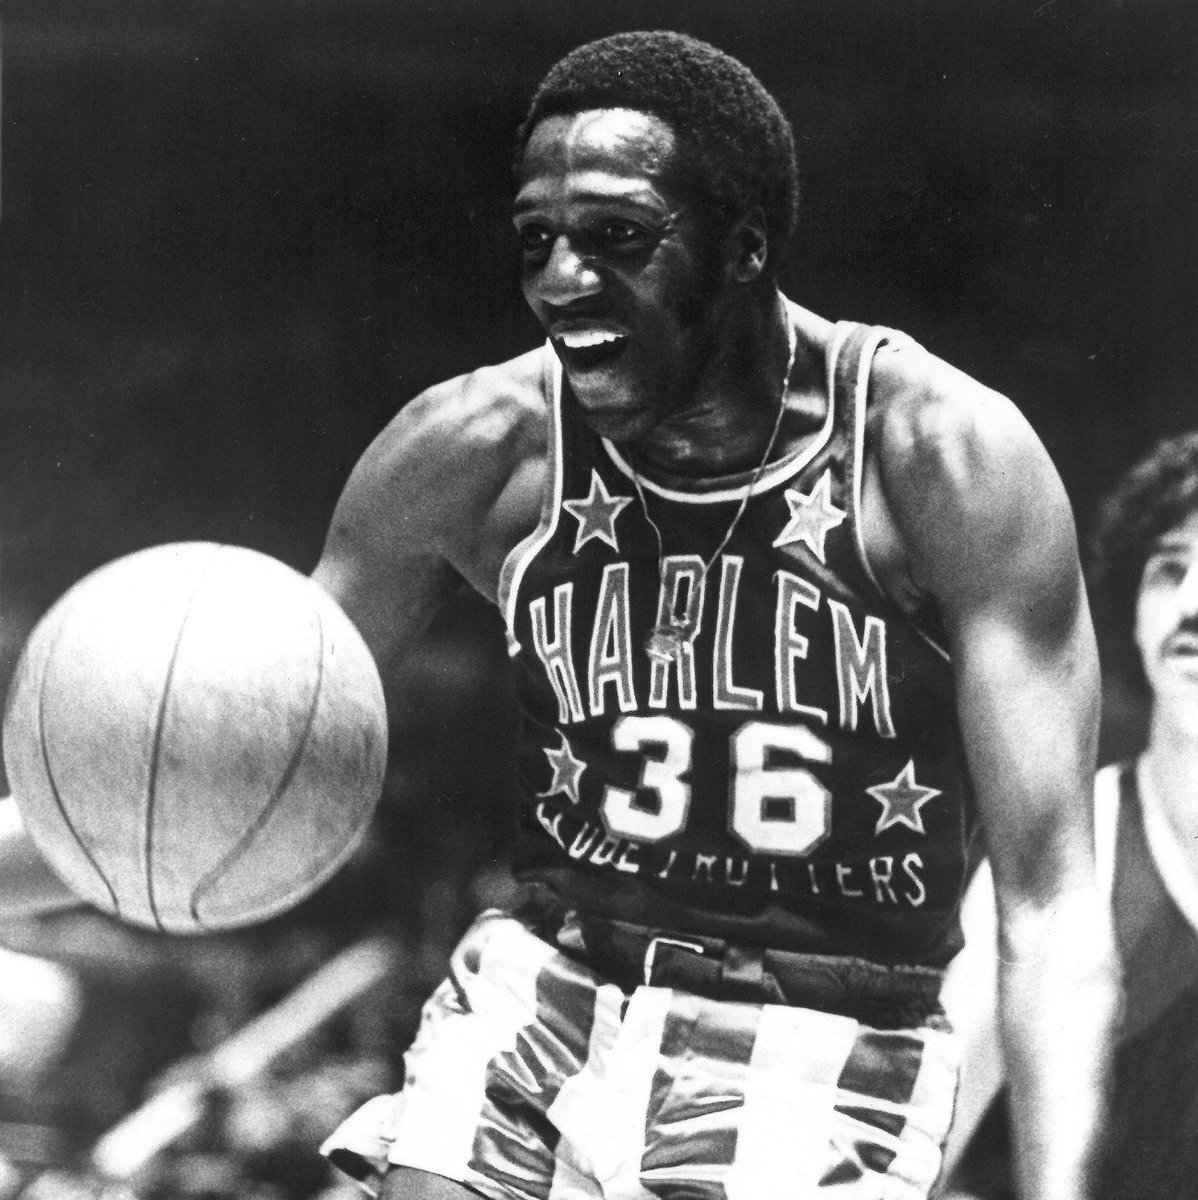 We are deeply saddened by the passing of our beloved Meadowlark Lemon. He was 83. #RIPMeadowlark https://t.co/tCRWkZUD3h